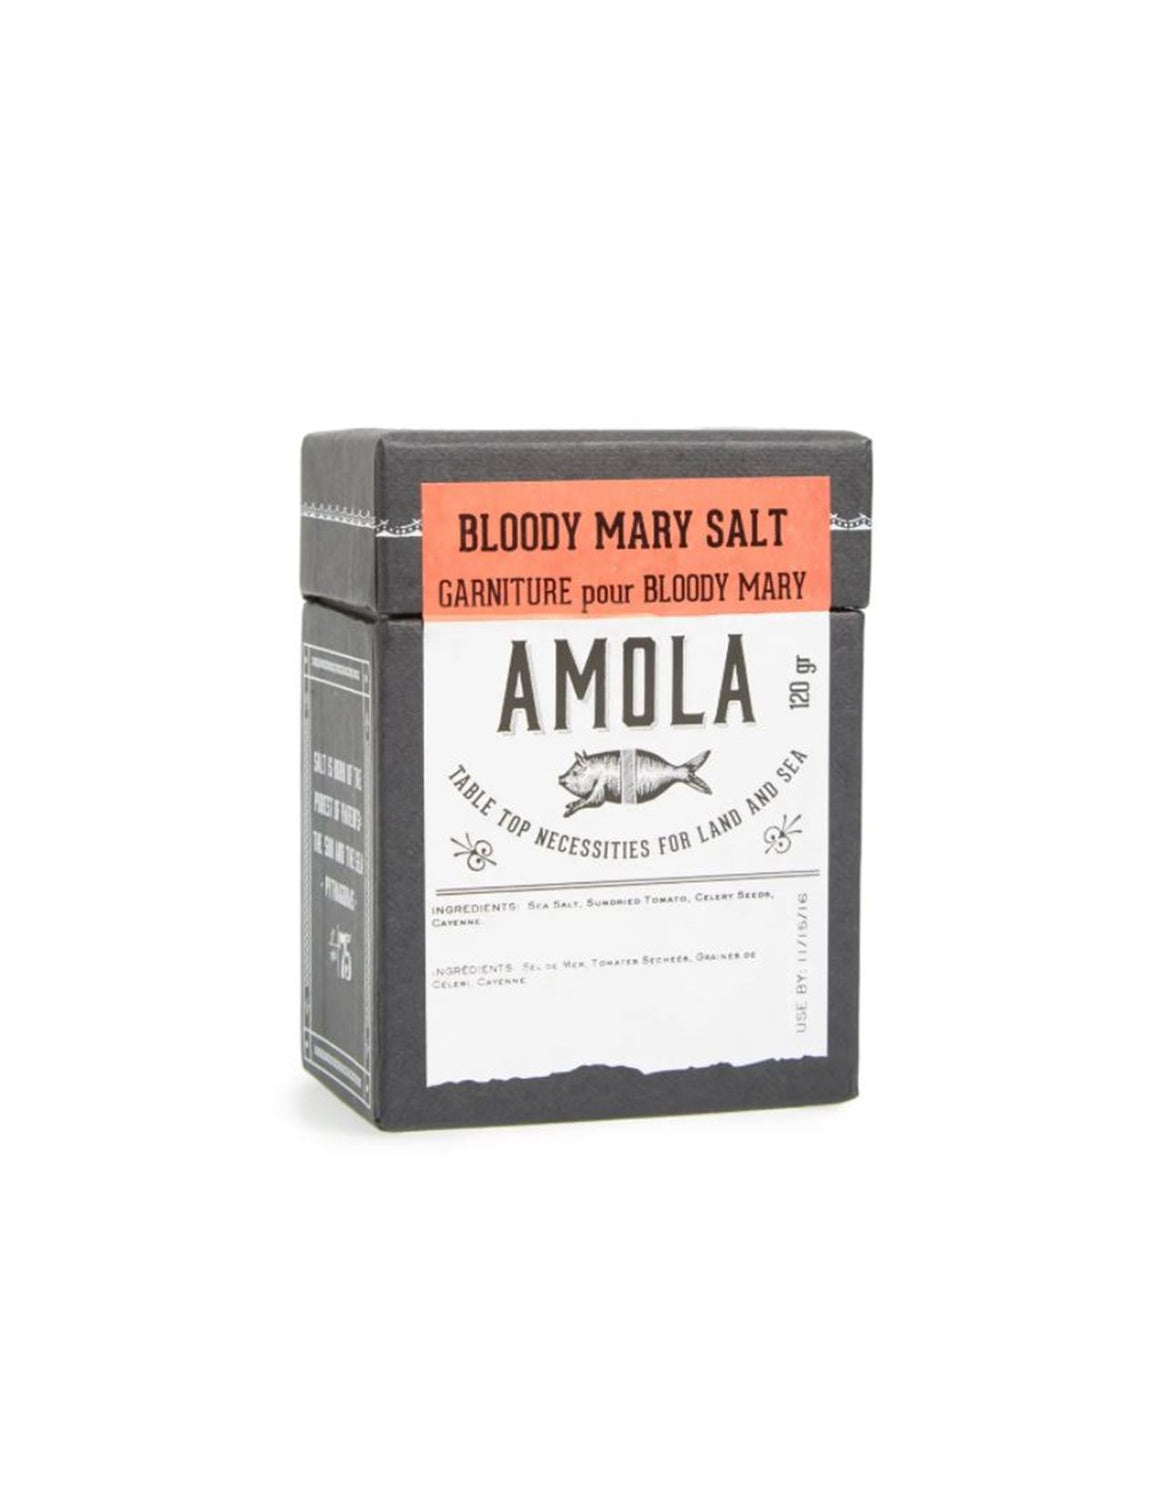 Amola - Bloody Mary Salt